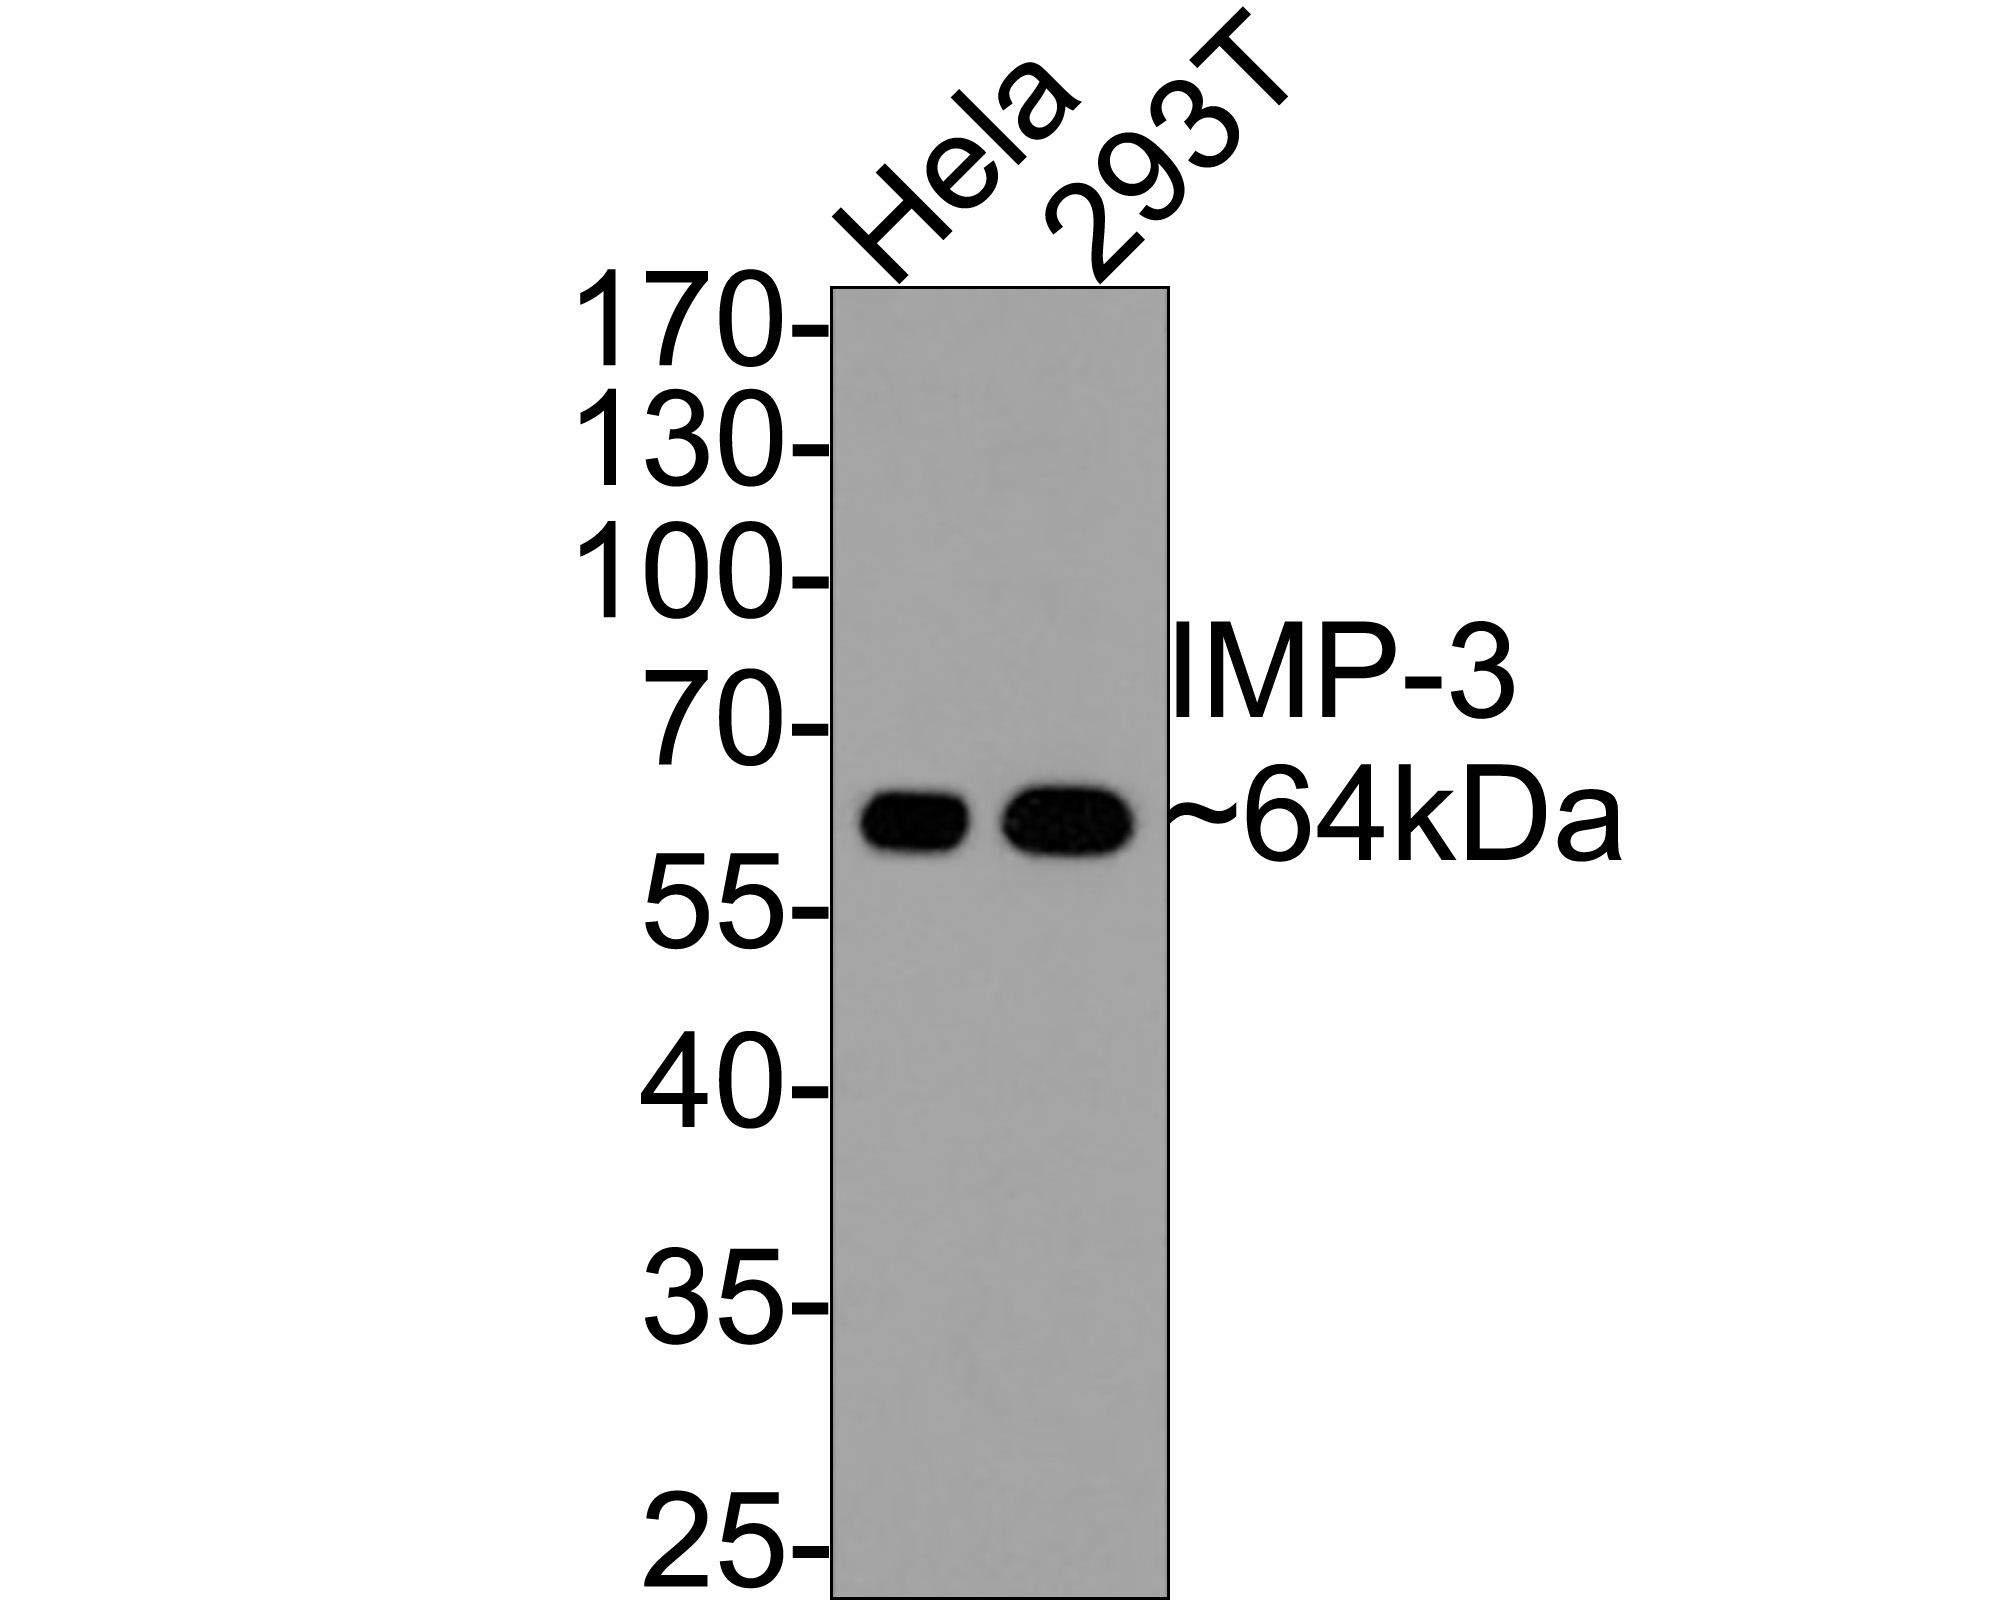 Western blot analysis of IMP-3 on Hela (1) and 293T (2) cell lysate using anti-IMP-3 antibody at 1/2,000 dilution.